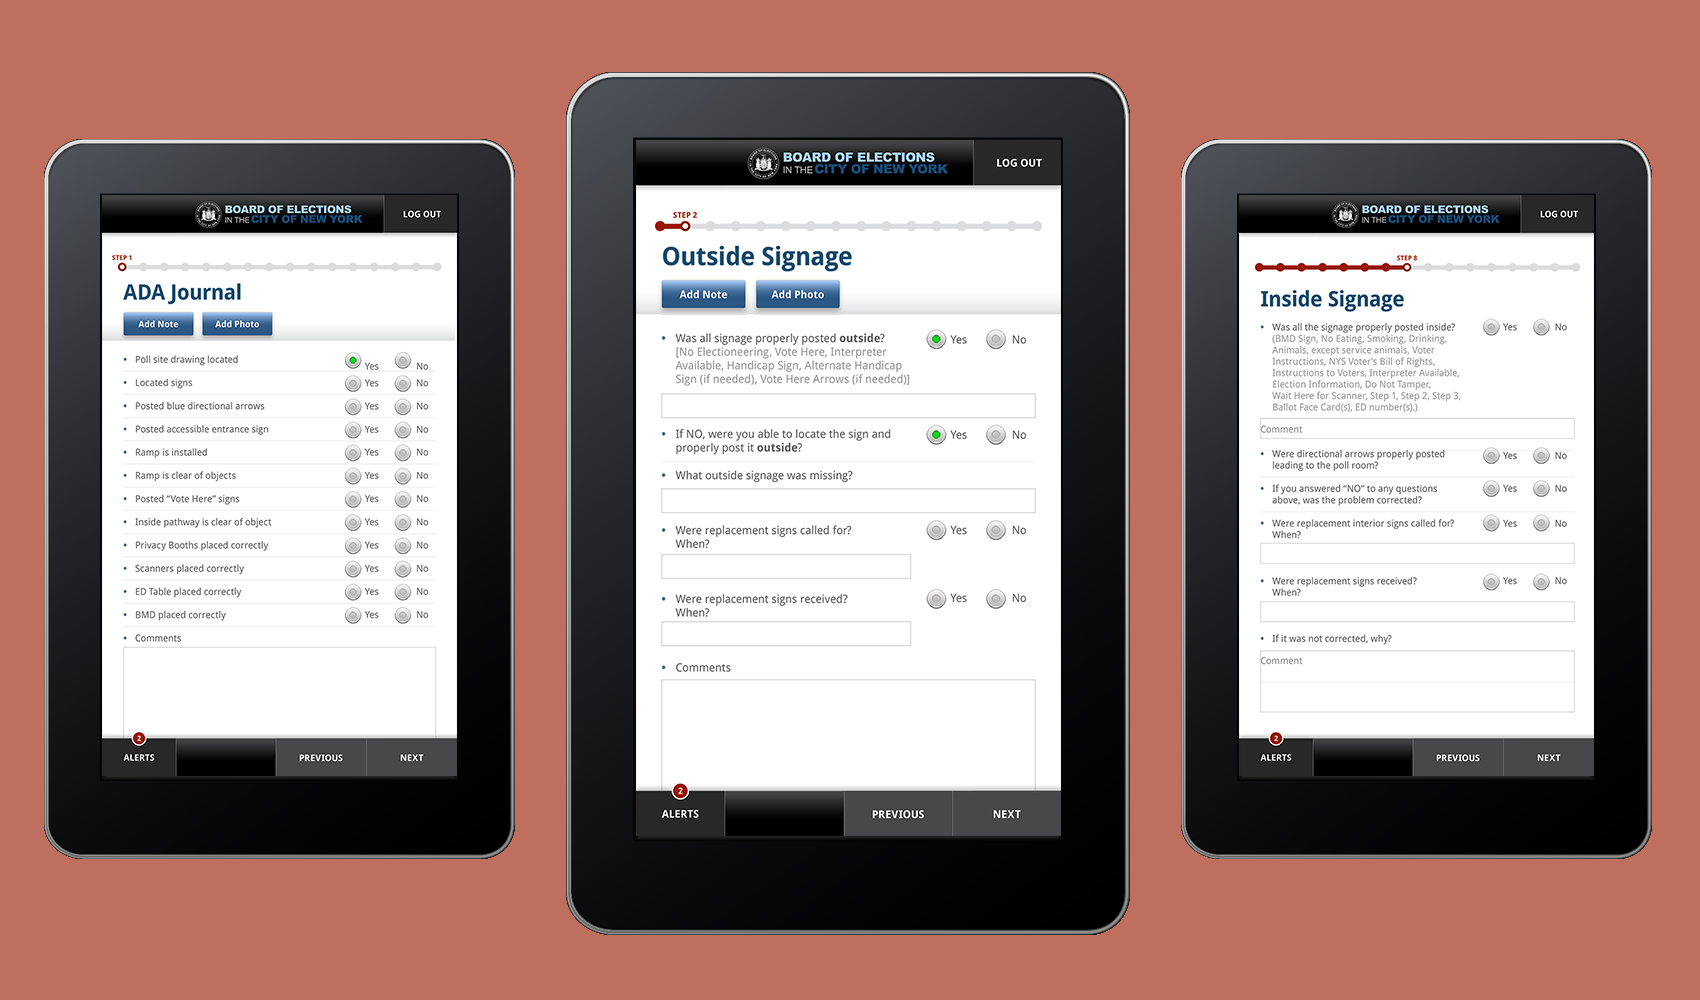 Vanguard - Poll Site Reporting & Locator Apps for NYC Board of Elections